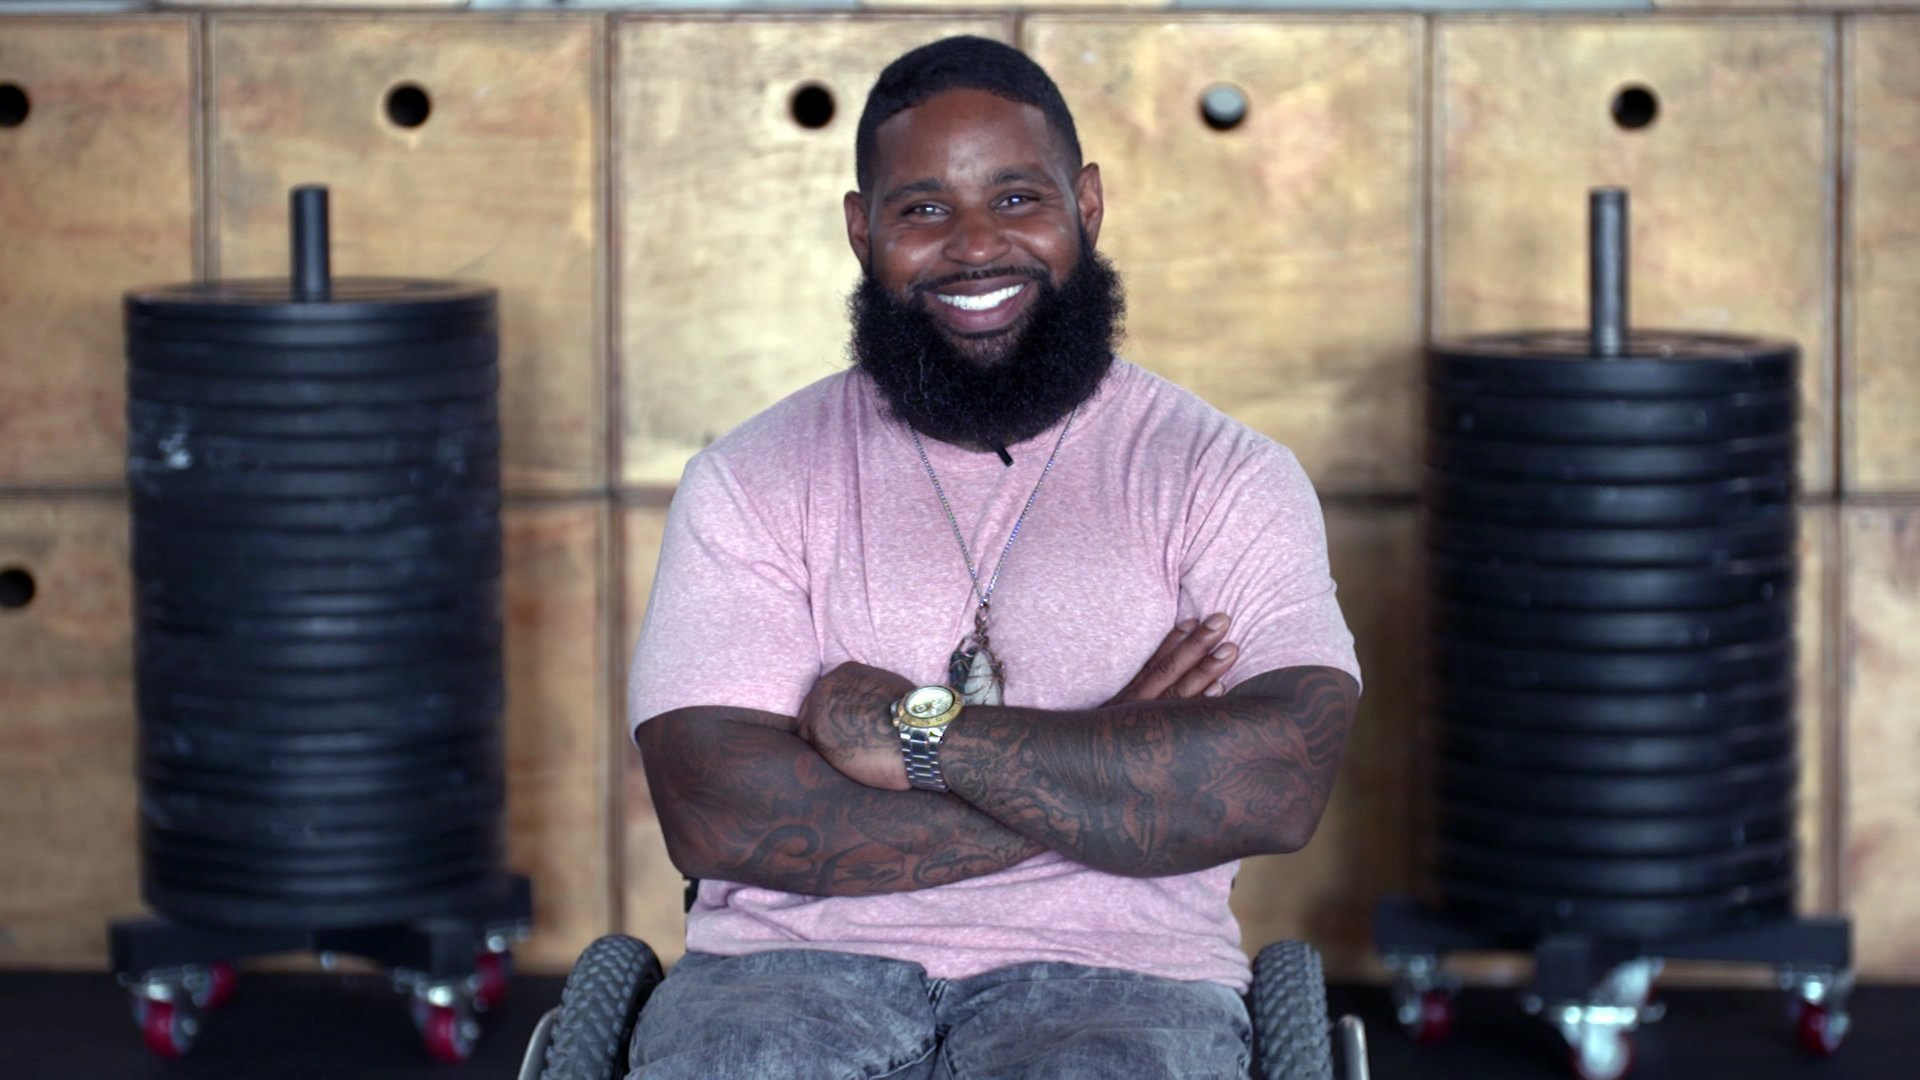 He was shot and paralyzed. Now he is living his best life in a wheelchair.